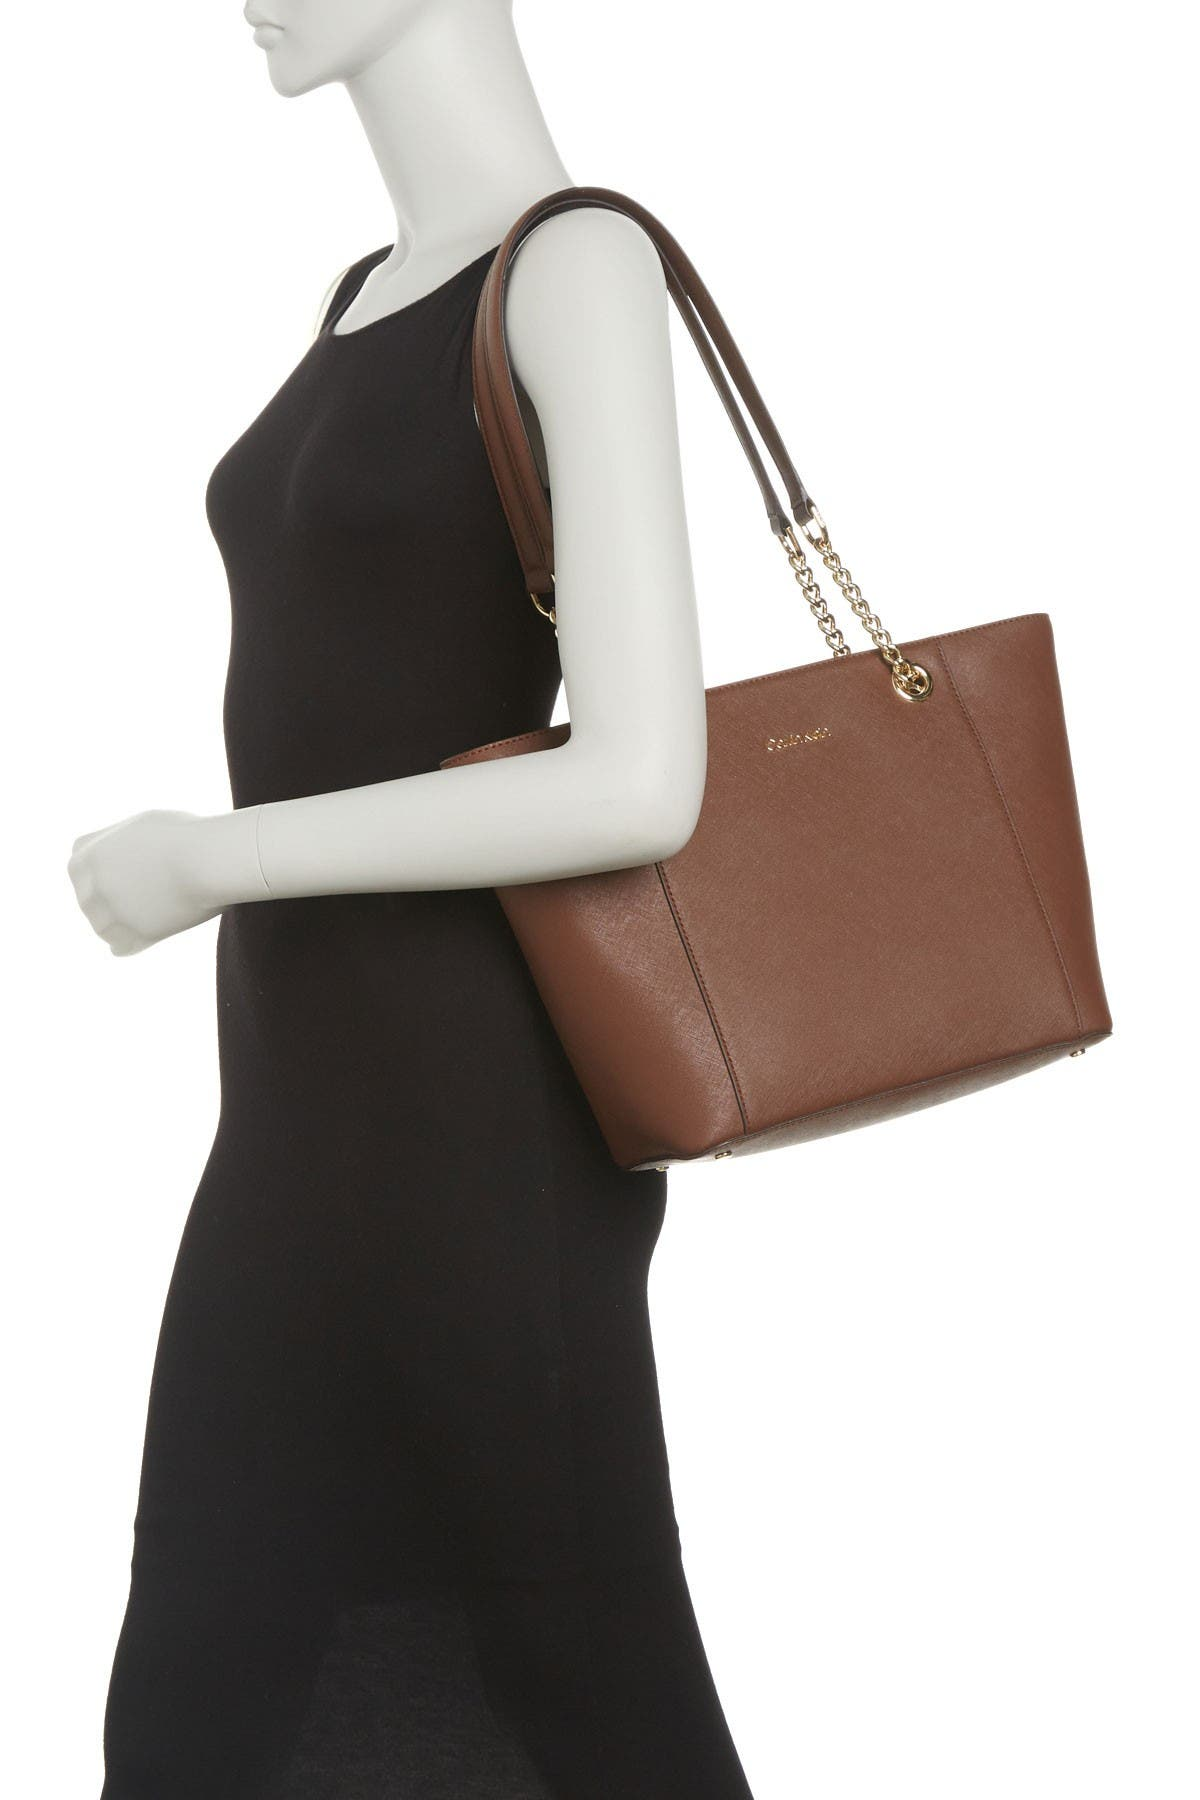 Image of Calvin Klein Hayden Key Item Saffiano Leather Tote